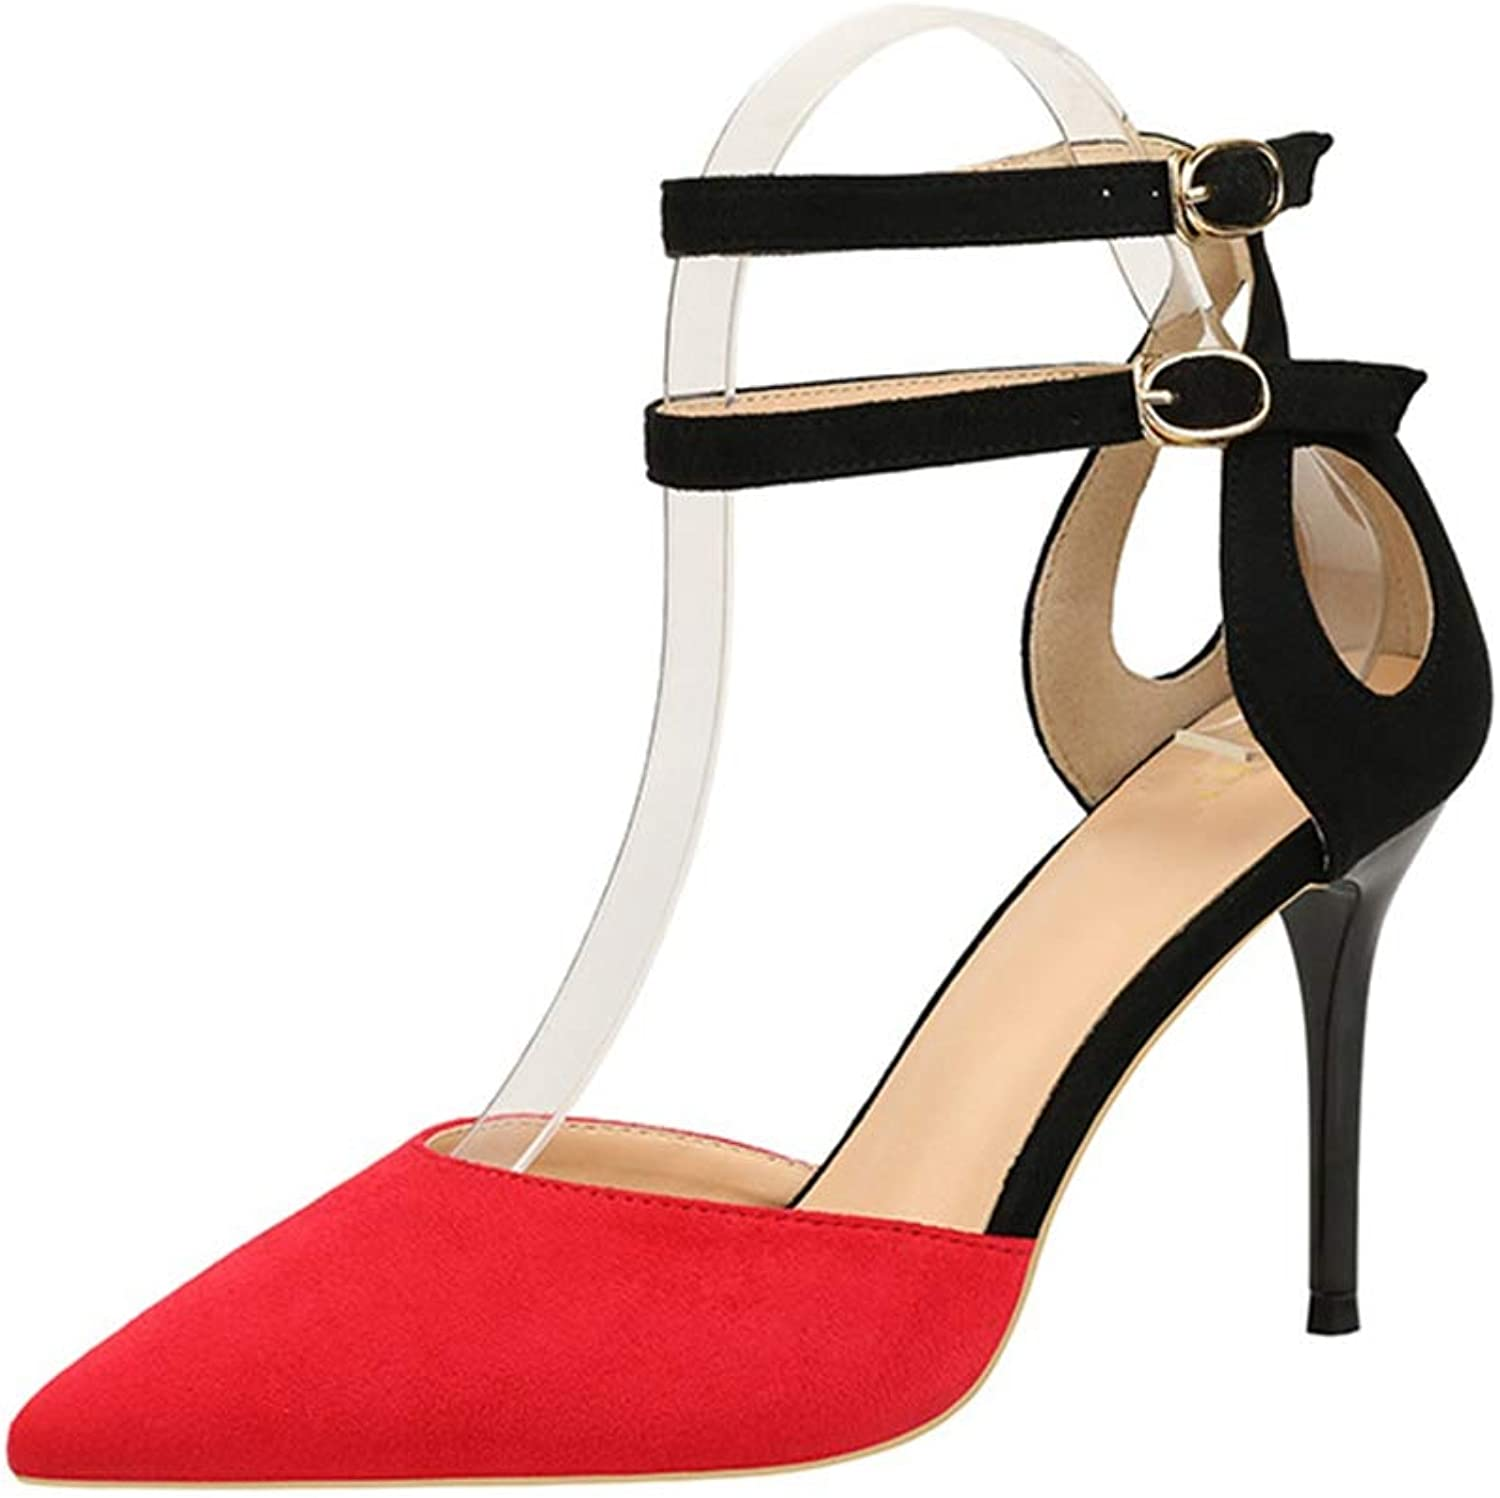 Sam Carle Womens Pumps,Summer Sexy High Heel Yellow Red Ankle Strap Pump Work shoes